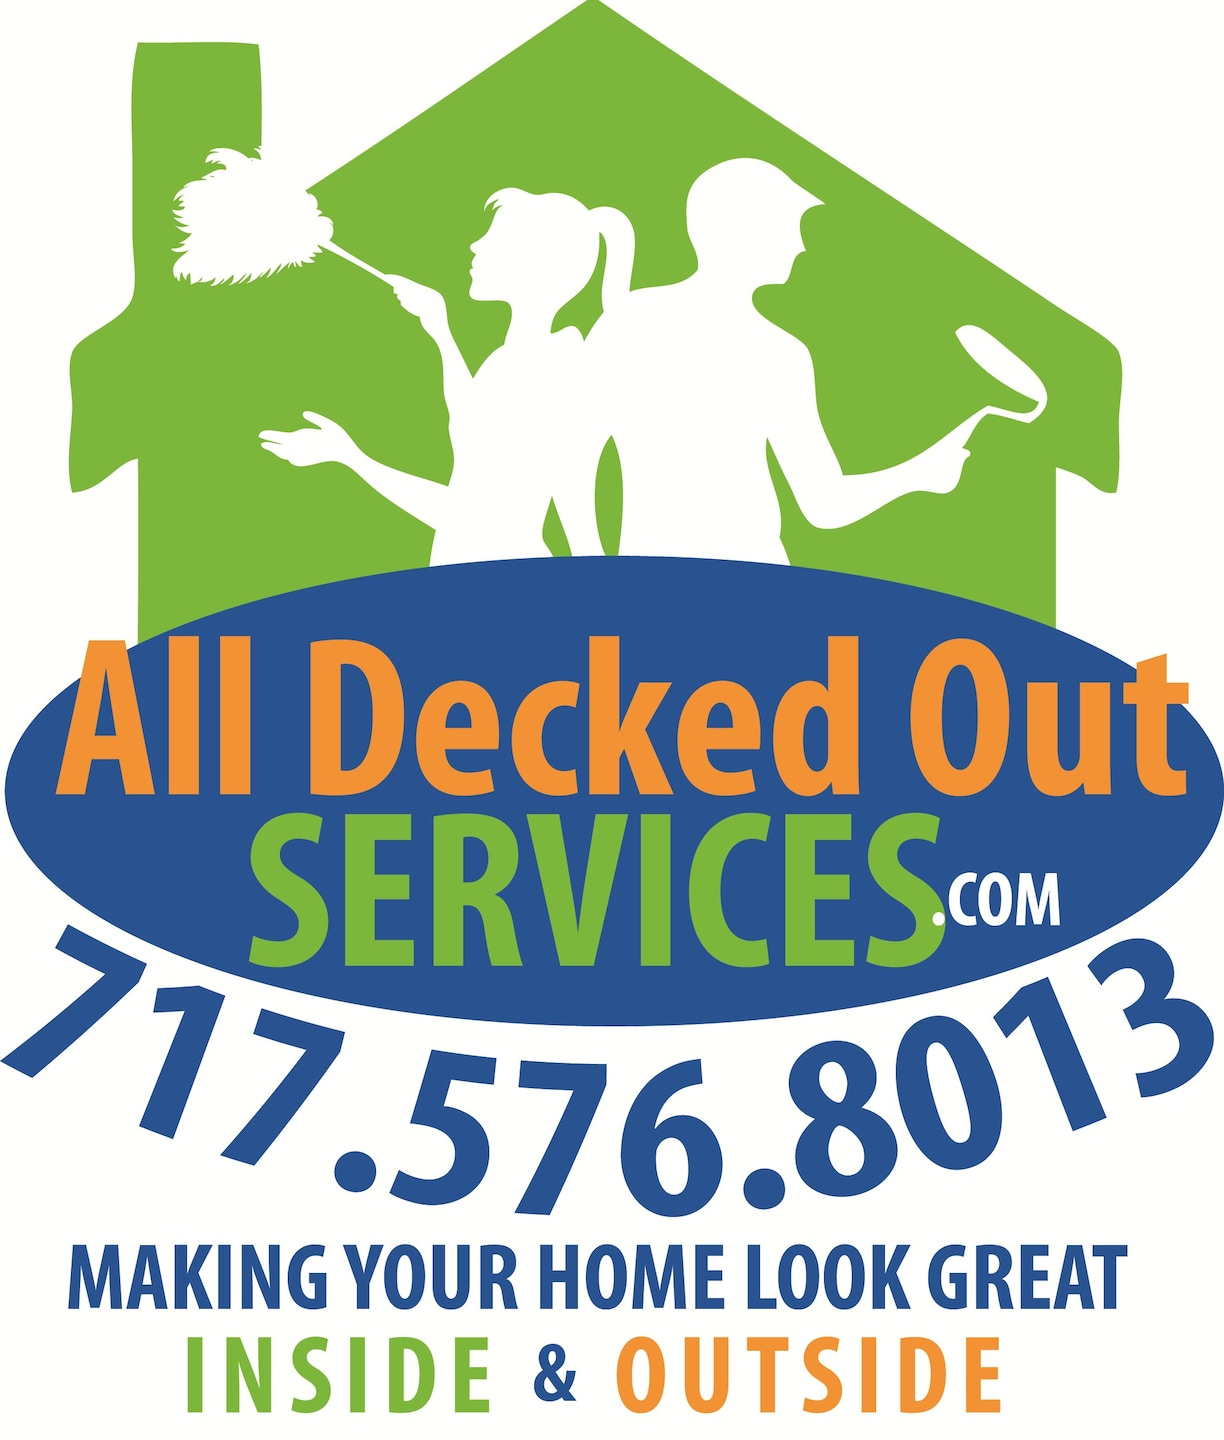 All Decked Out Services Inc